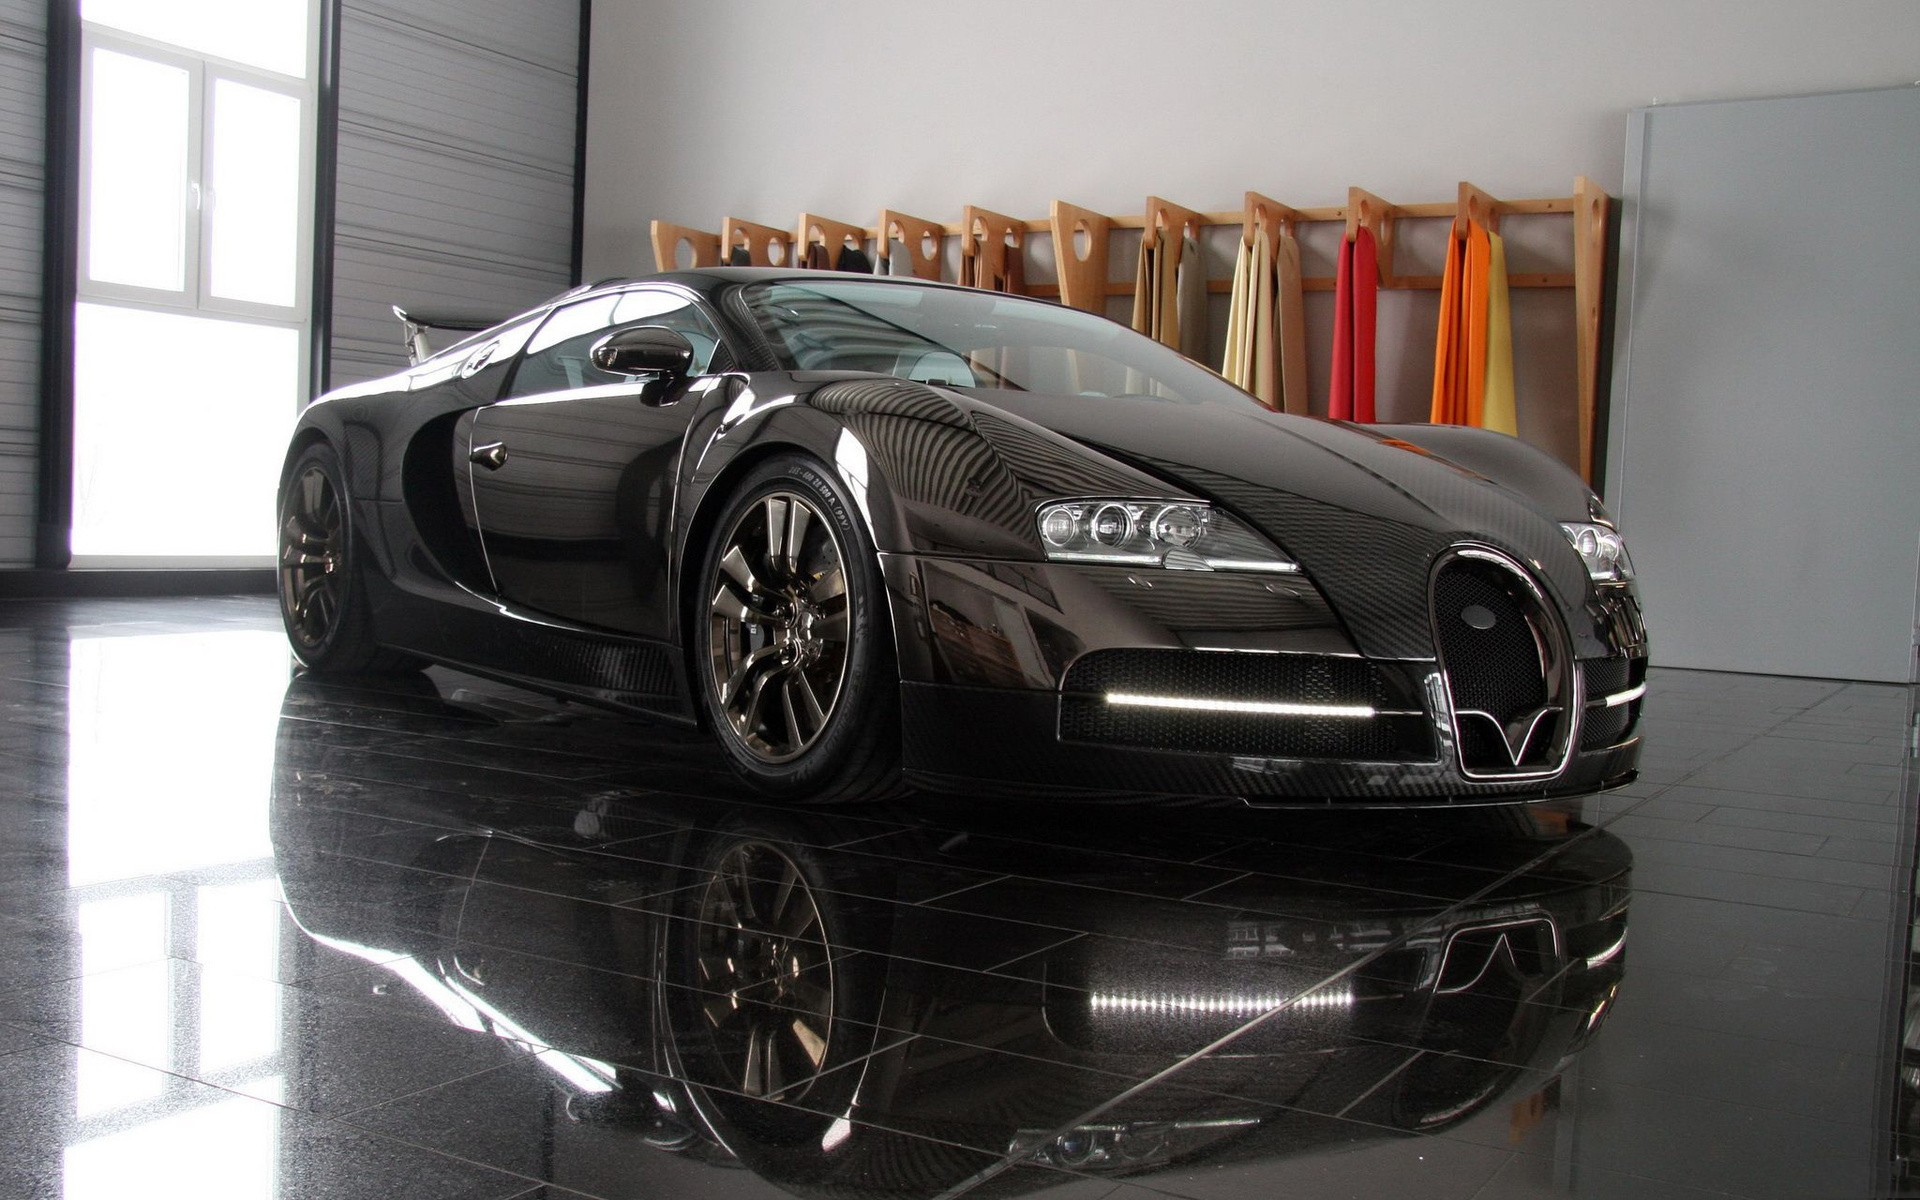 cars bugatti veyron supercars tuning mansory wallpaper 1920x1200 8808 wallpaperup. Black Bedroom Furniture Sets. Home Design Ideas